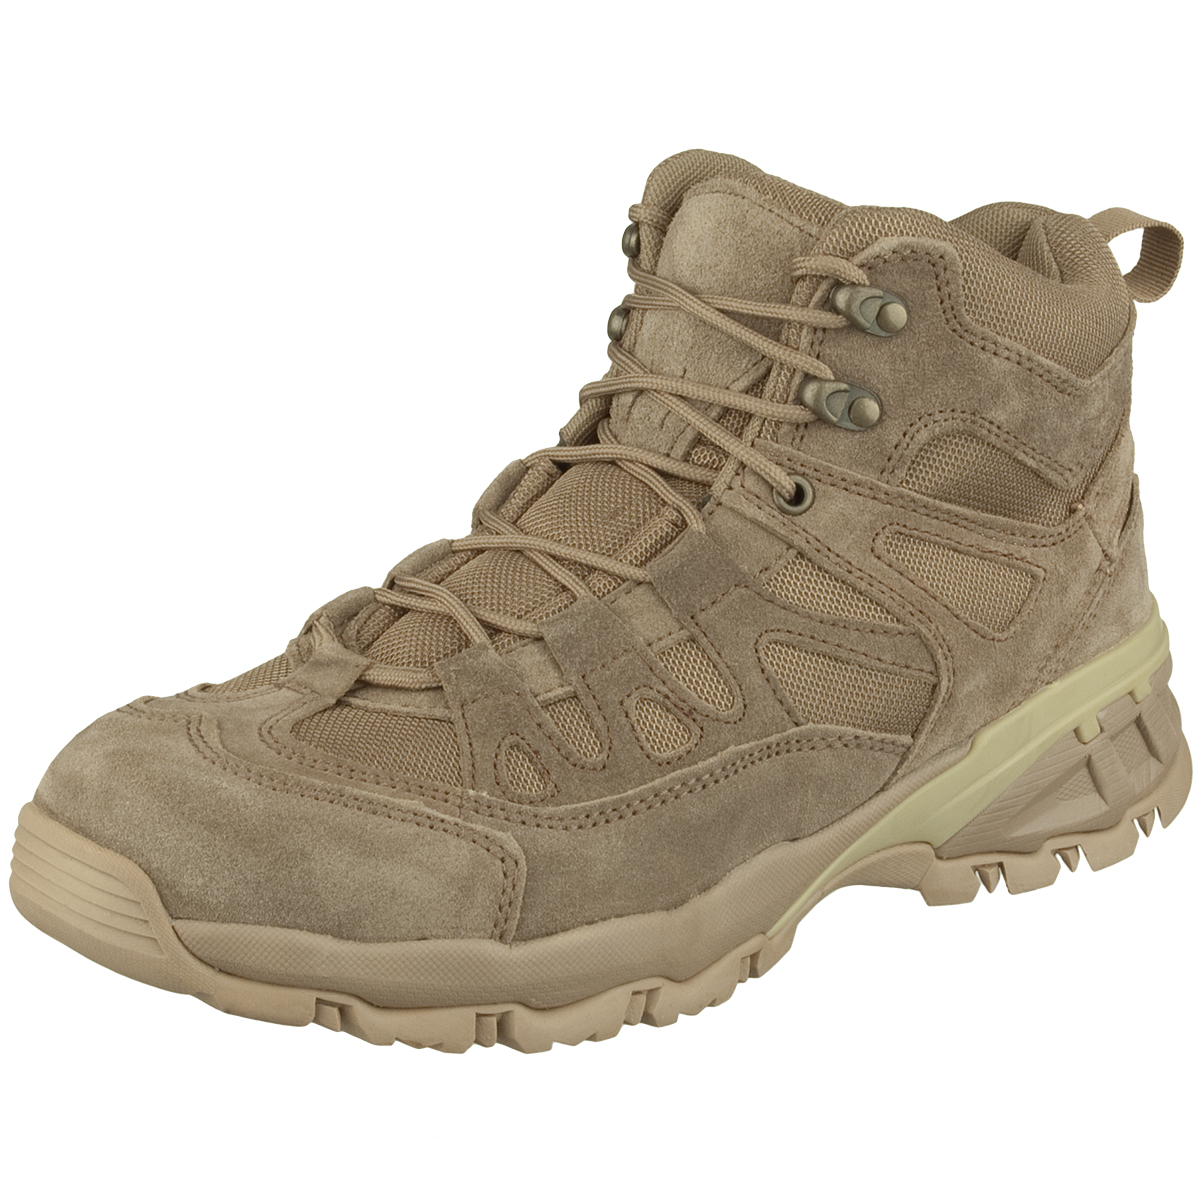 Brandit Outdoor Trail Mid Cut Boots Camel Boots